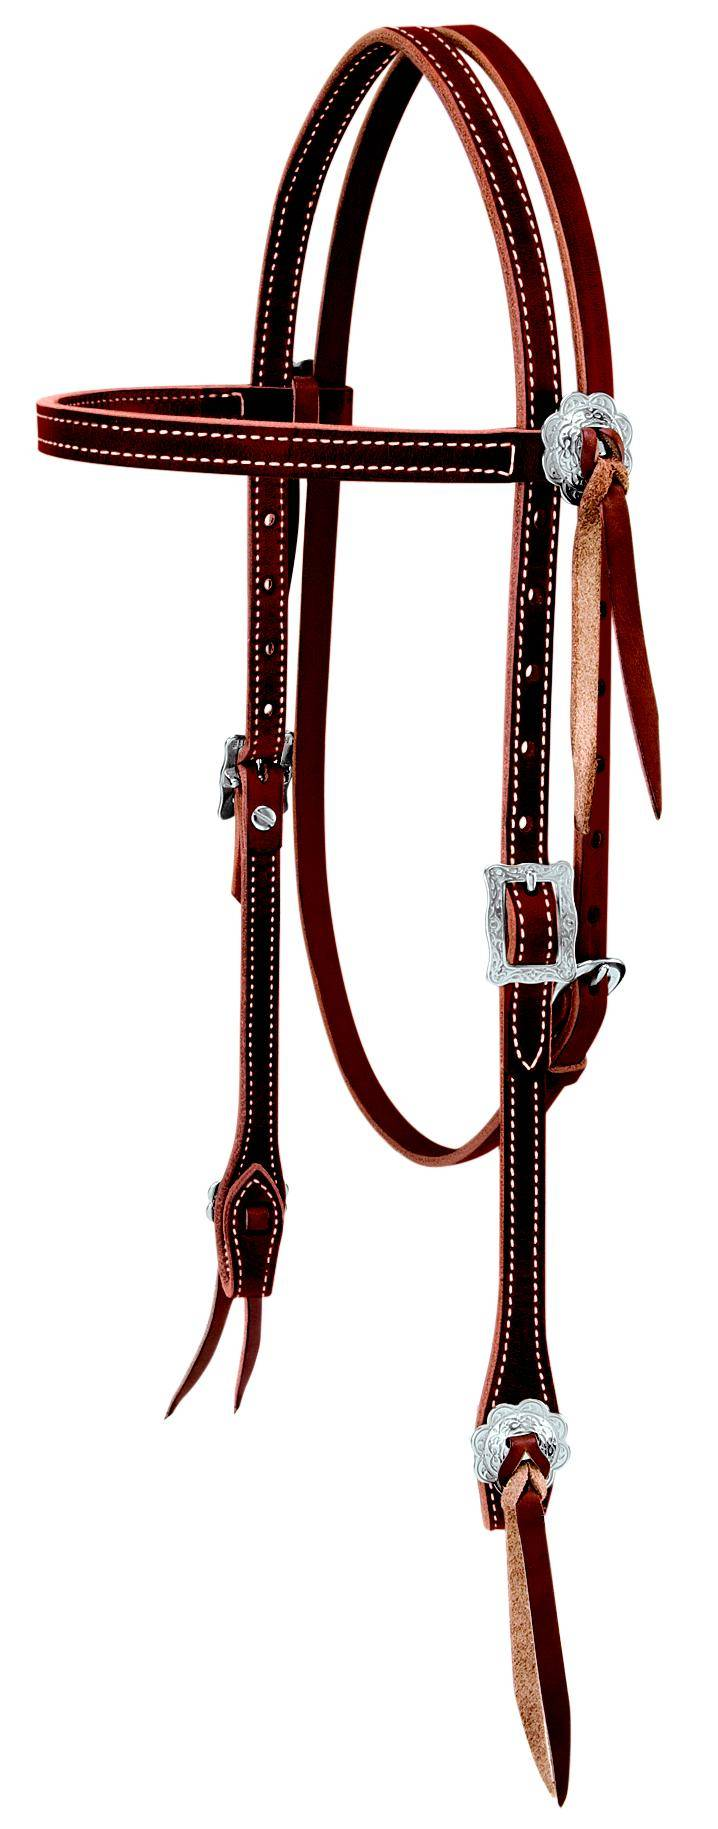 Weaver Stockman Band Headstall